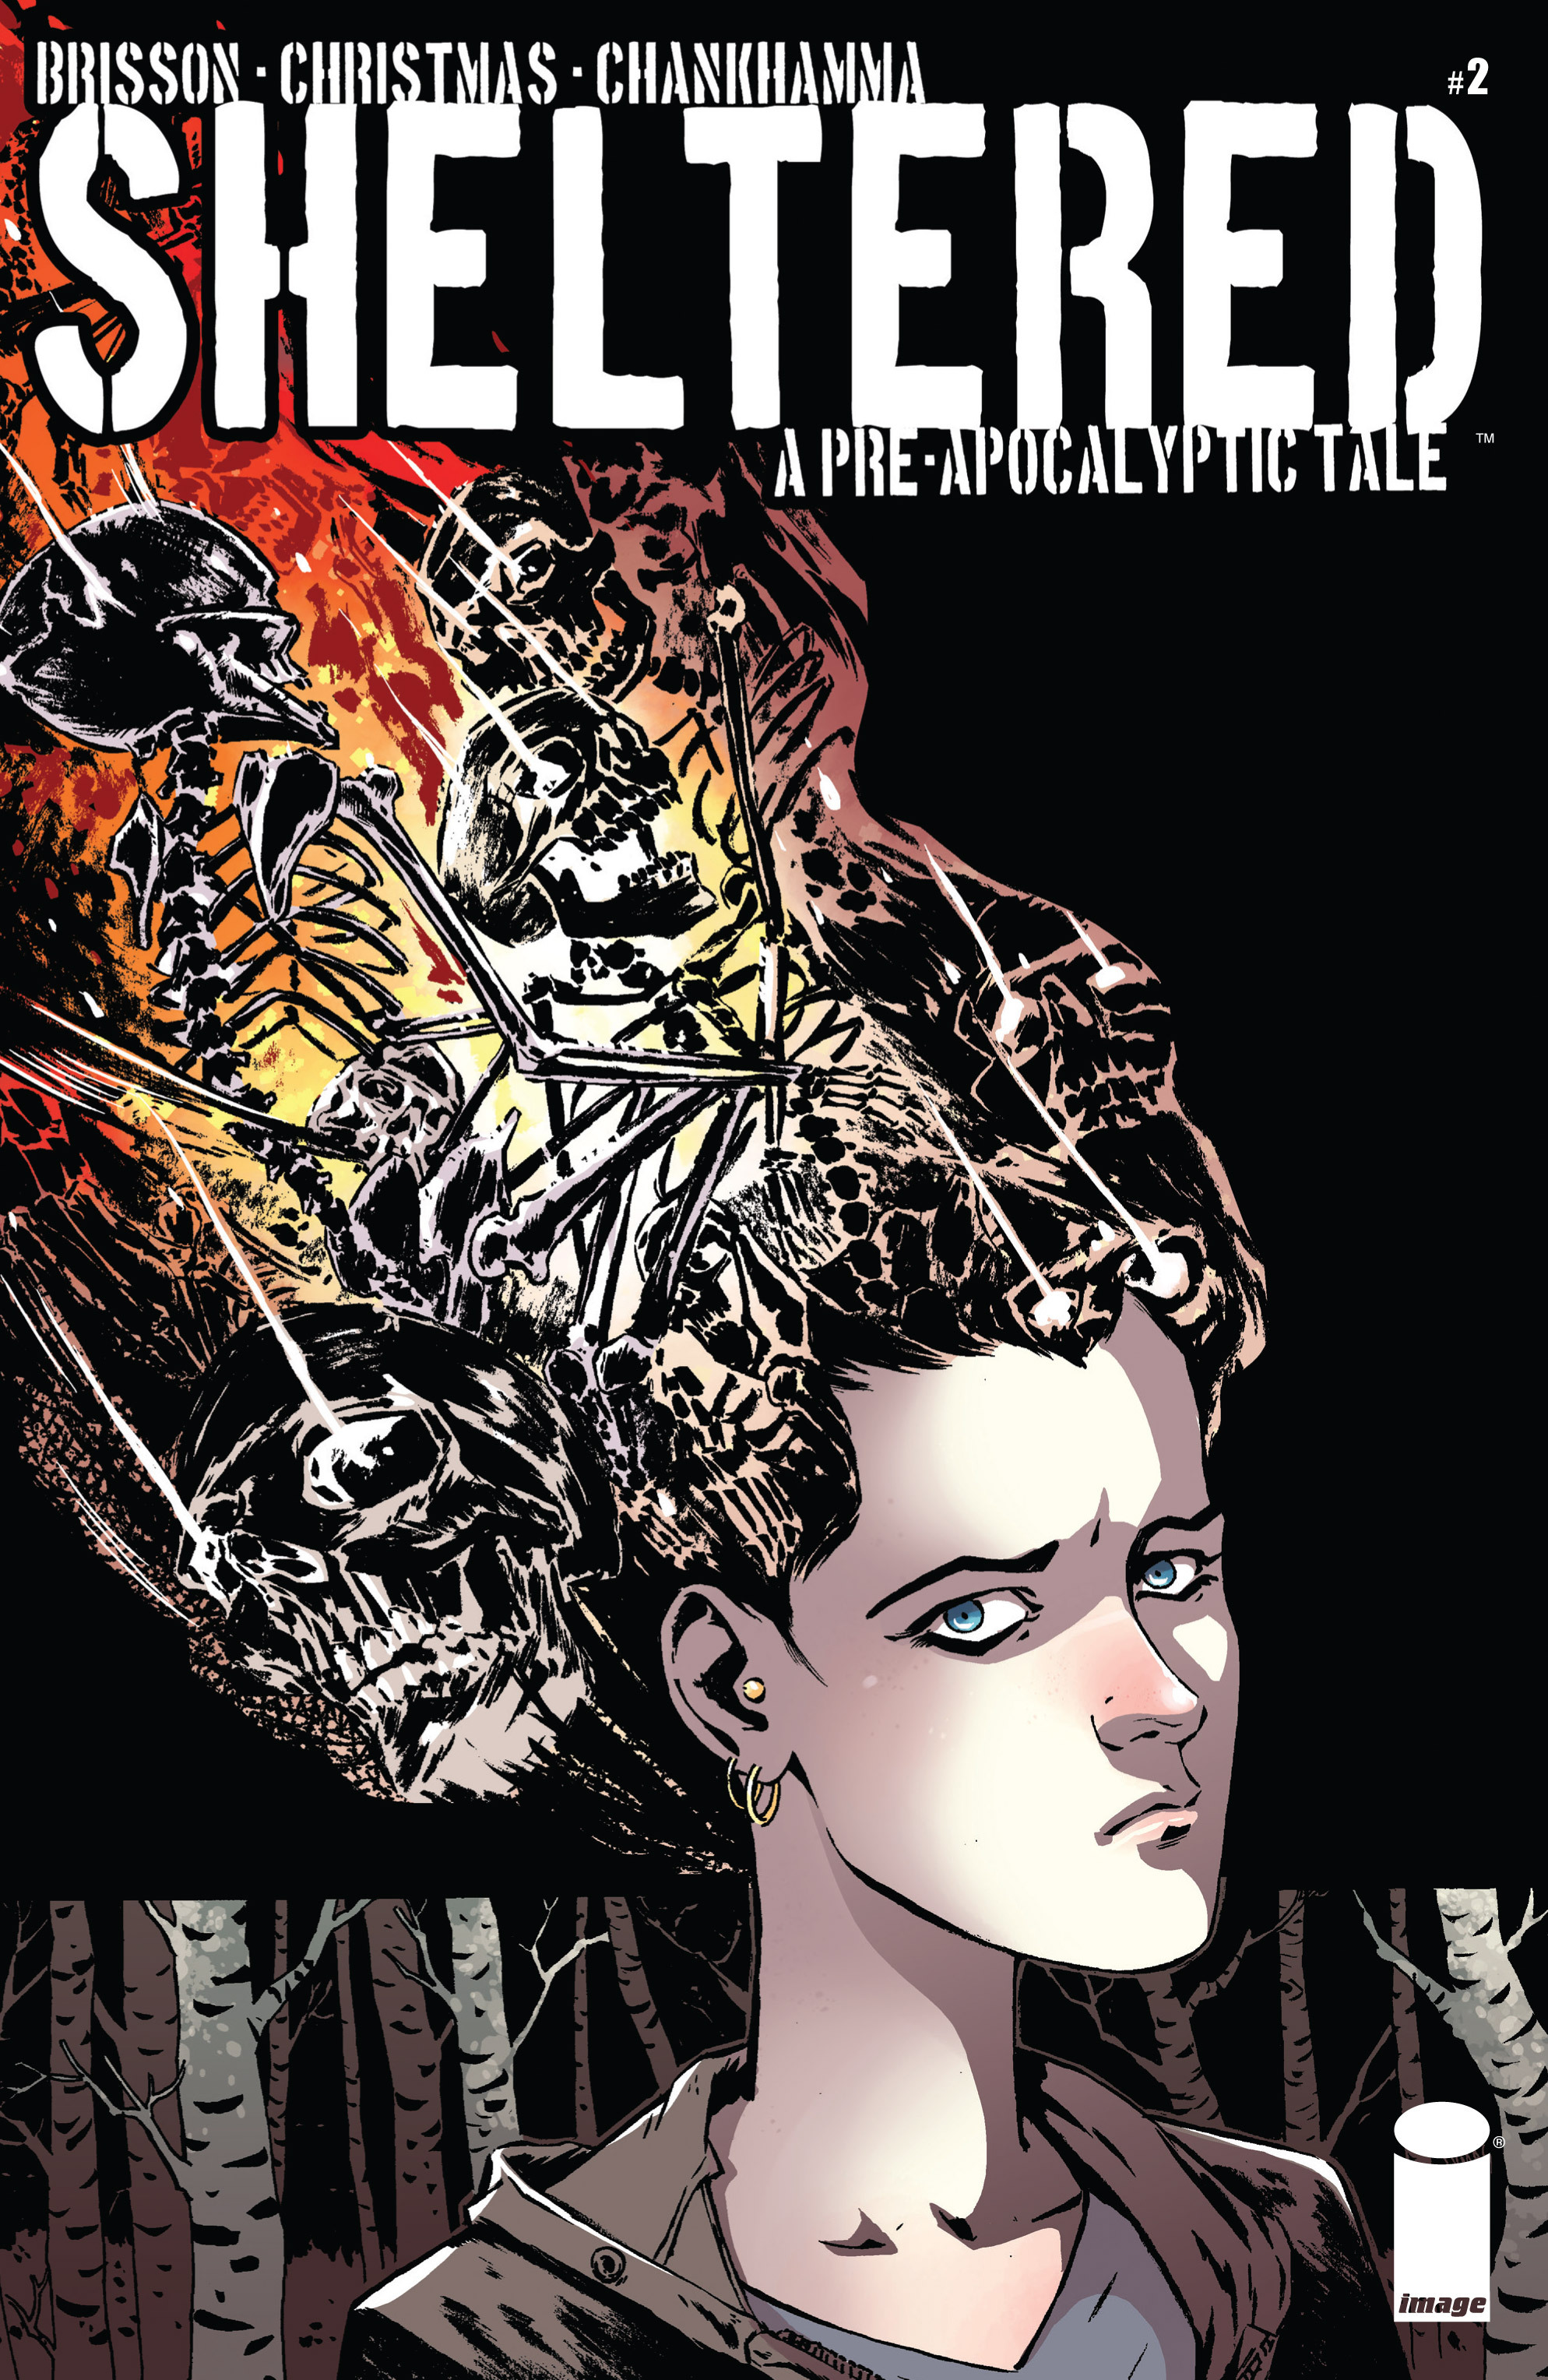 Read online Sheltered comic -  Issue #2 - 1